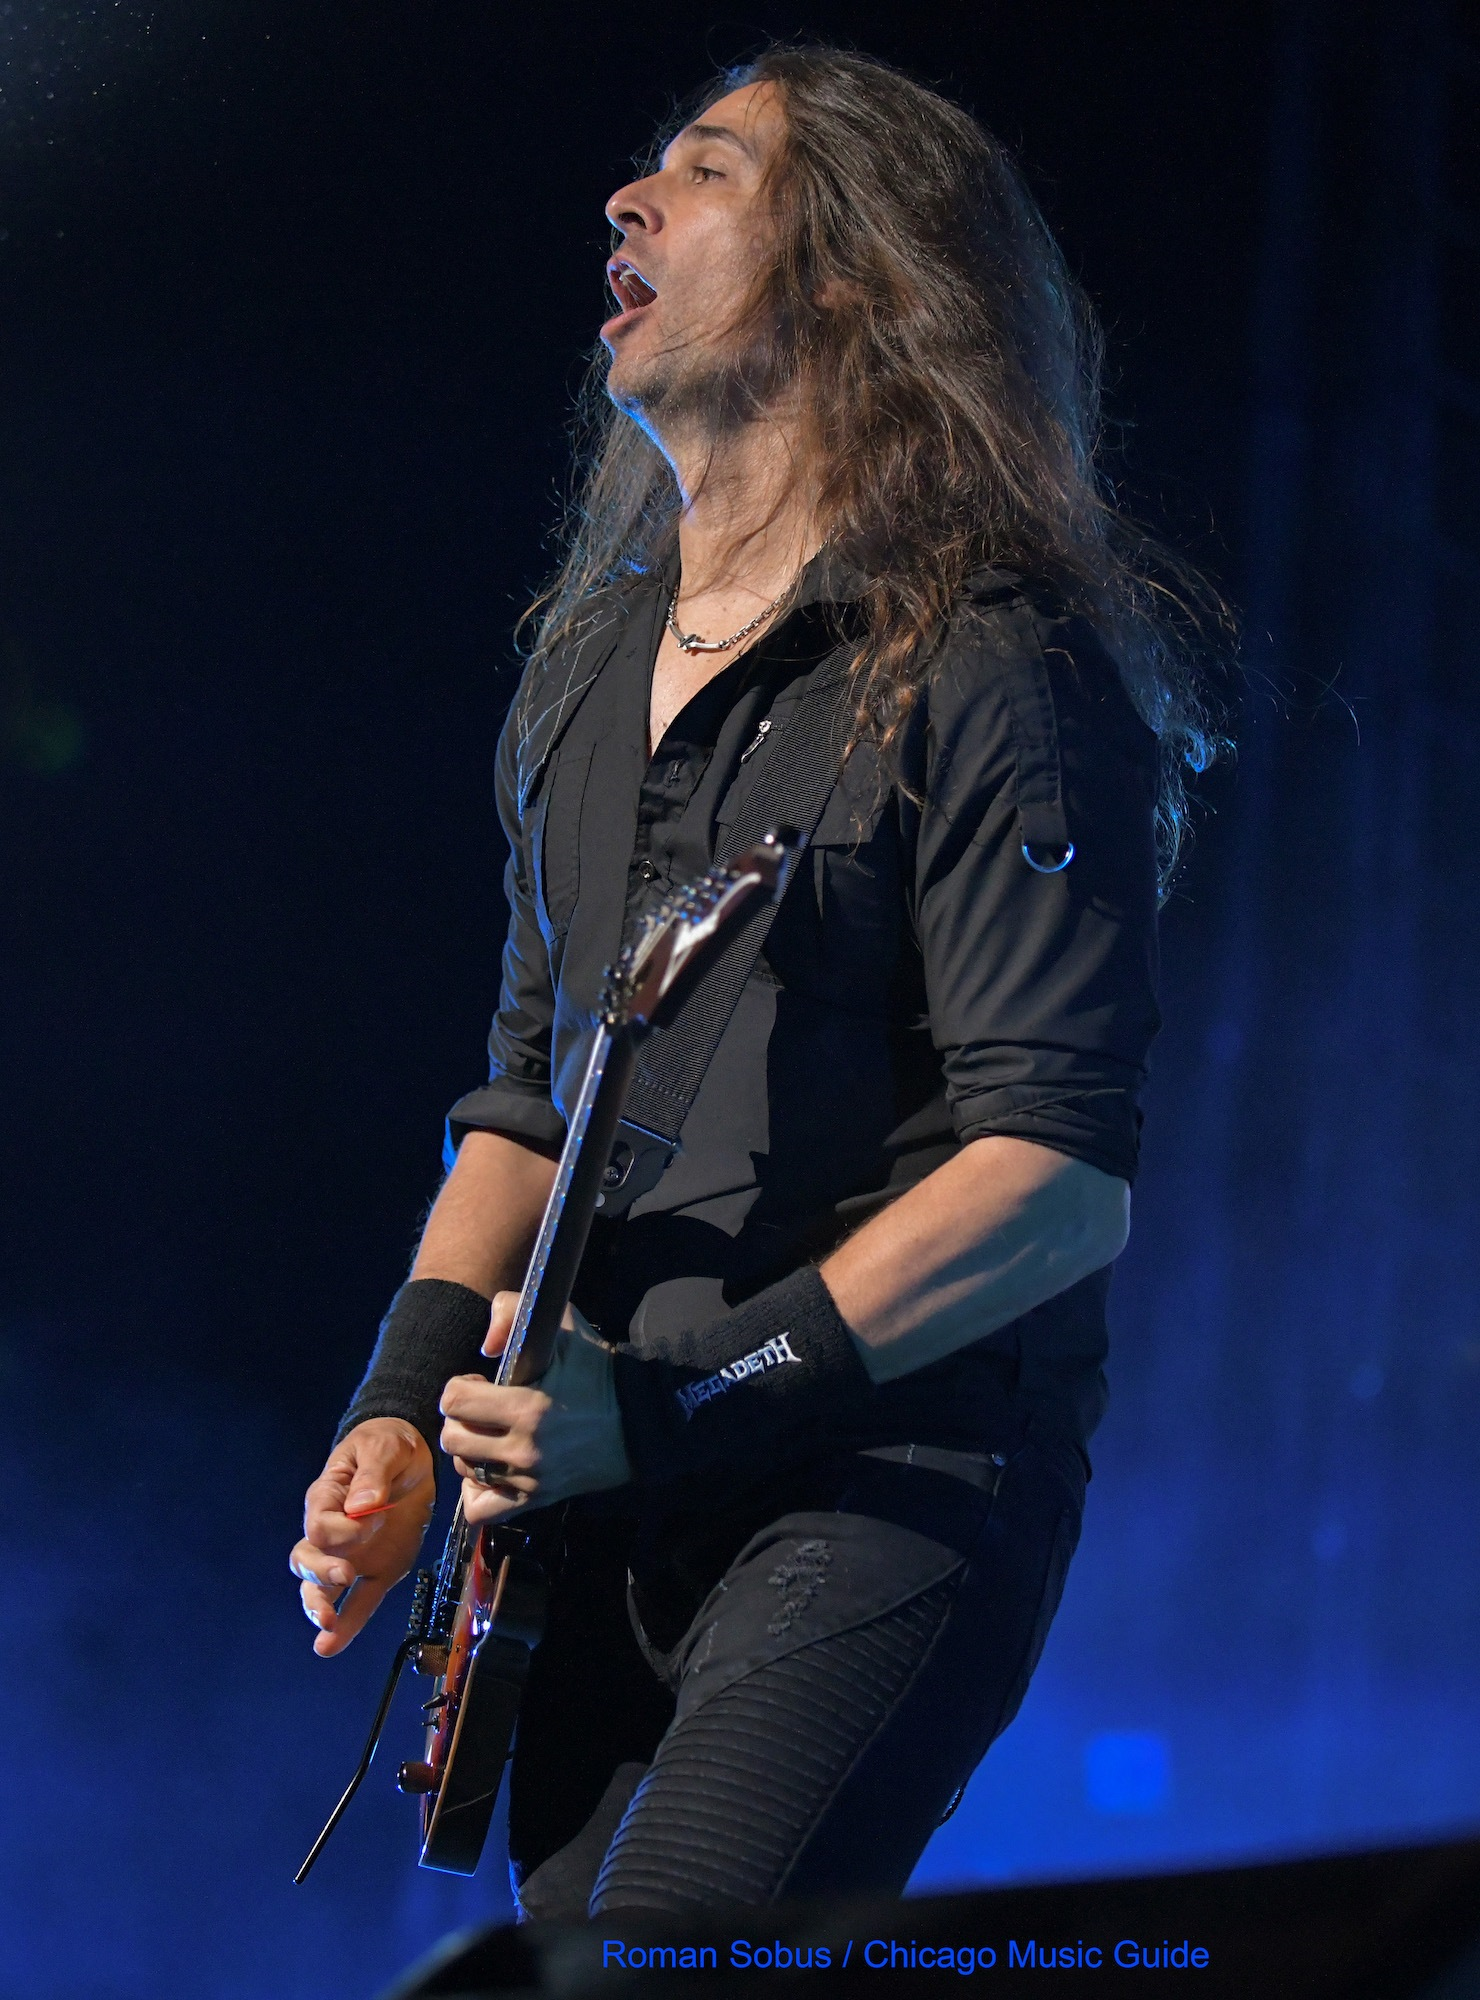 Megadeth Live at Hollywood Casino Amphitheatre [GALLERY] 2